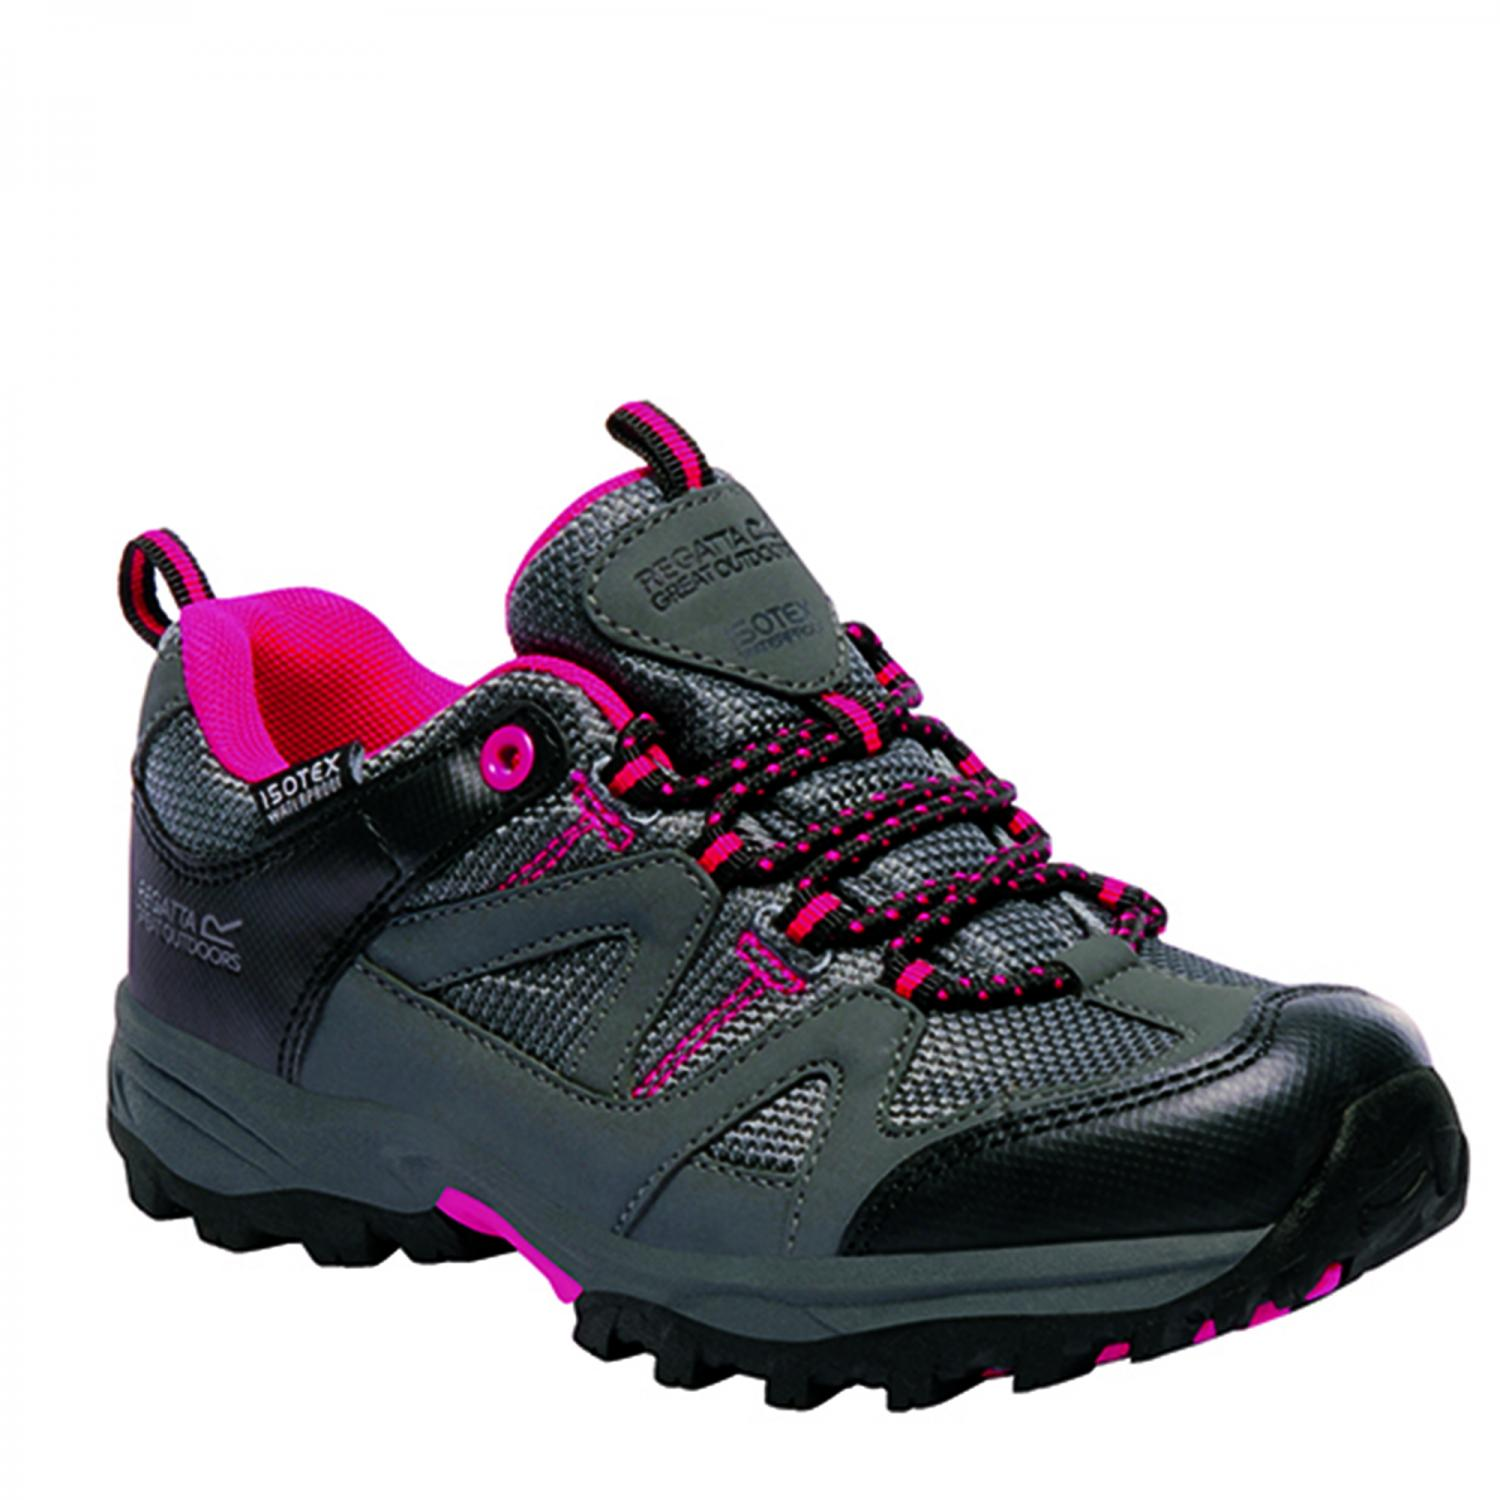 Gatlin Low Junior Walking Shoe Granite Duchess